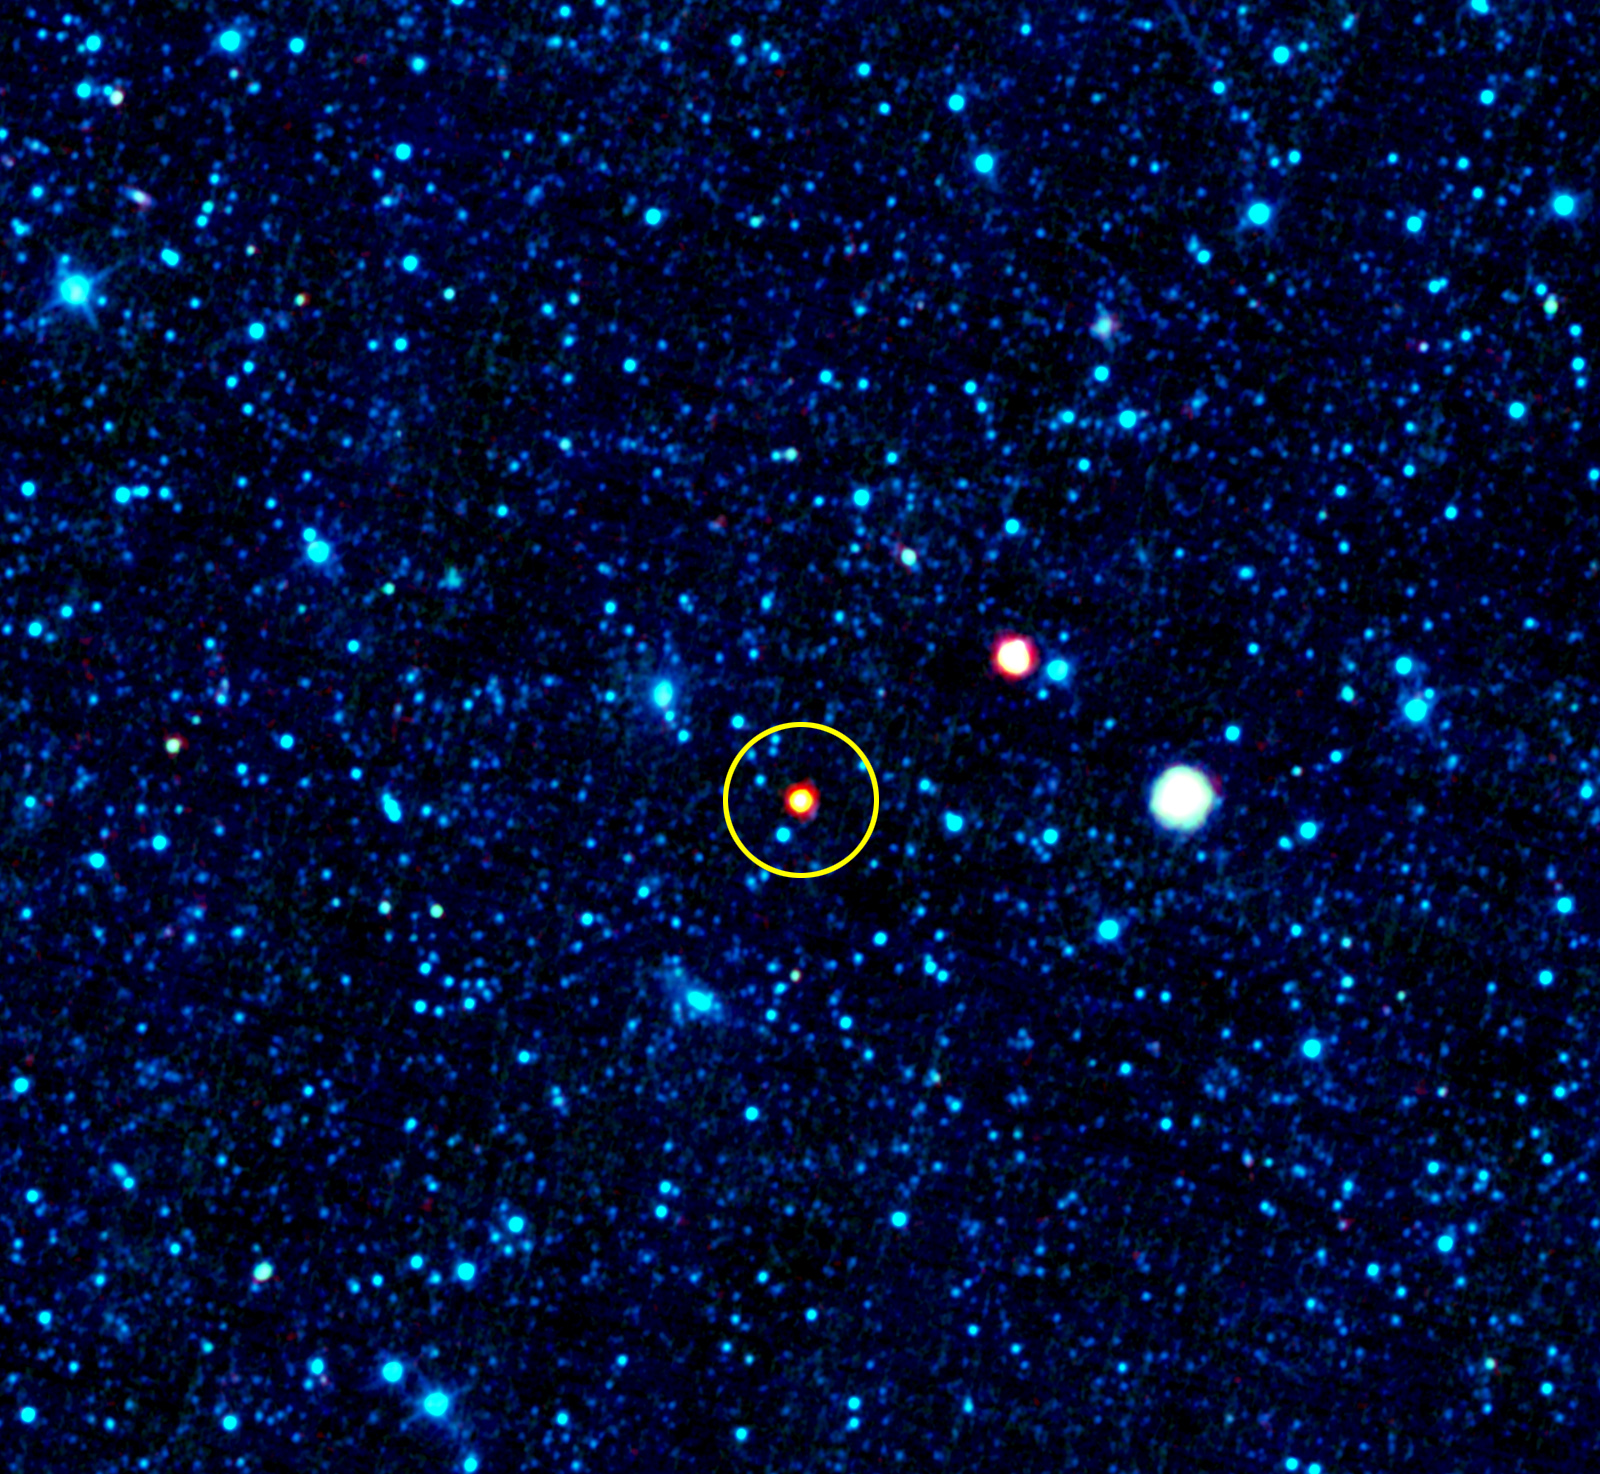 This image shows the galaxy named SBS 0335-052, which is in a class of galaxies called blue compact dwarfs